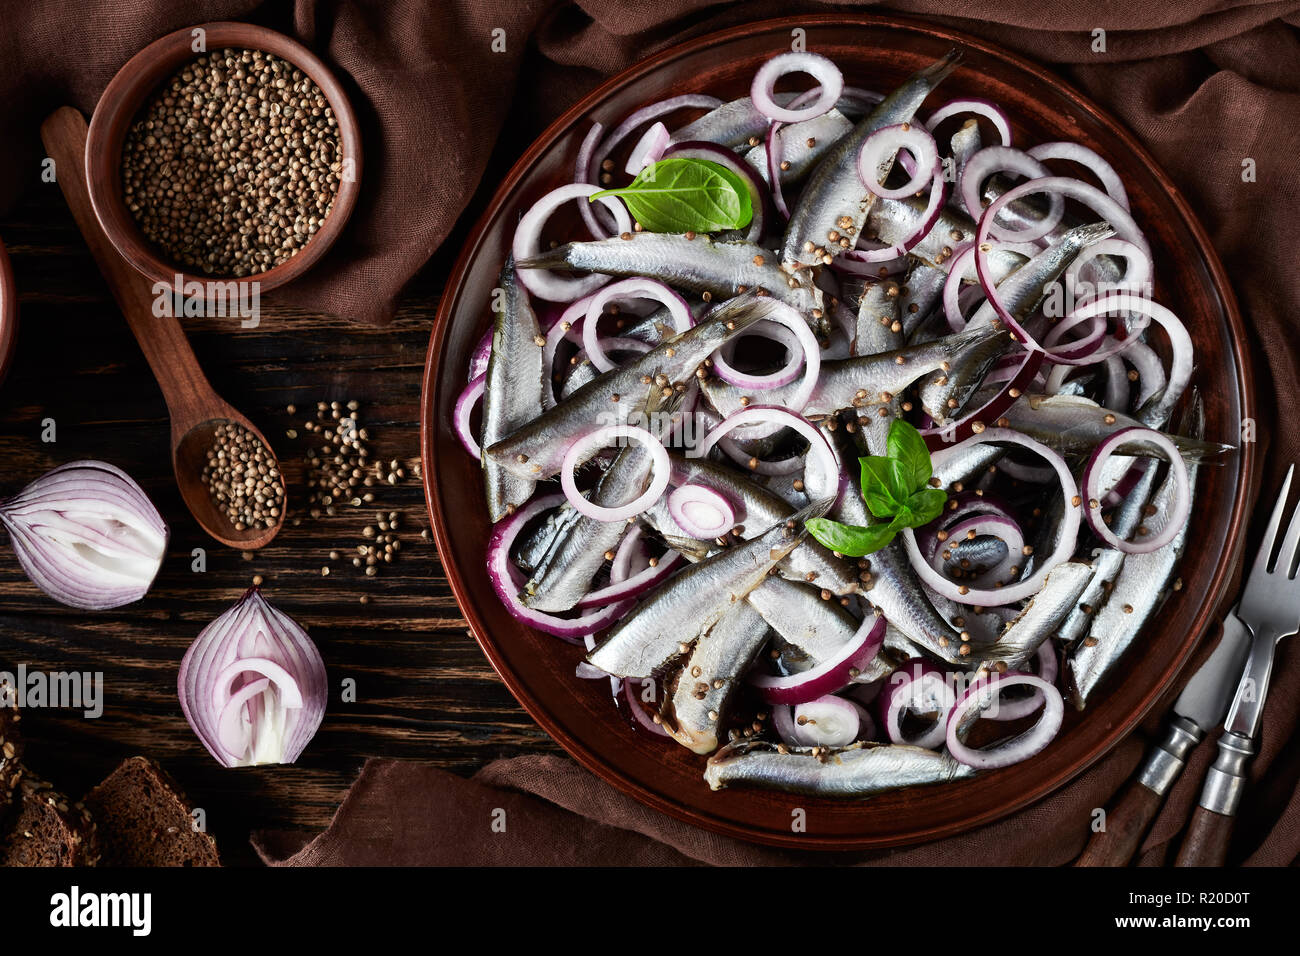 salted sprats marinated with red onion rings on an earthenware plate. coriander seeds, brown cloth, fork and knife on an old rustic wooden table, view - Stock Image